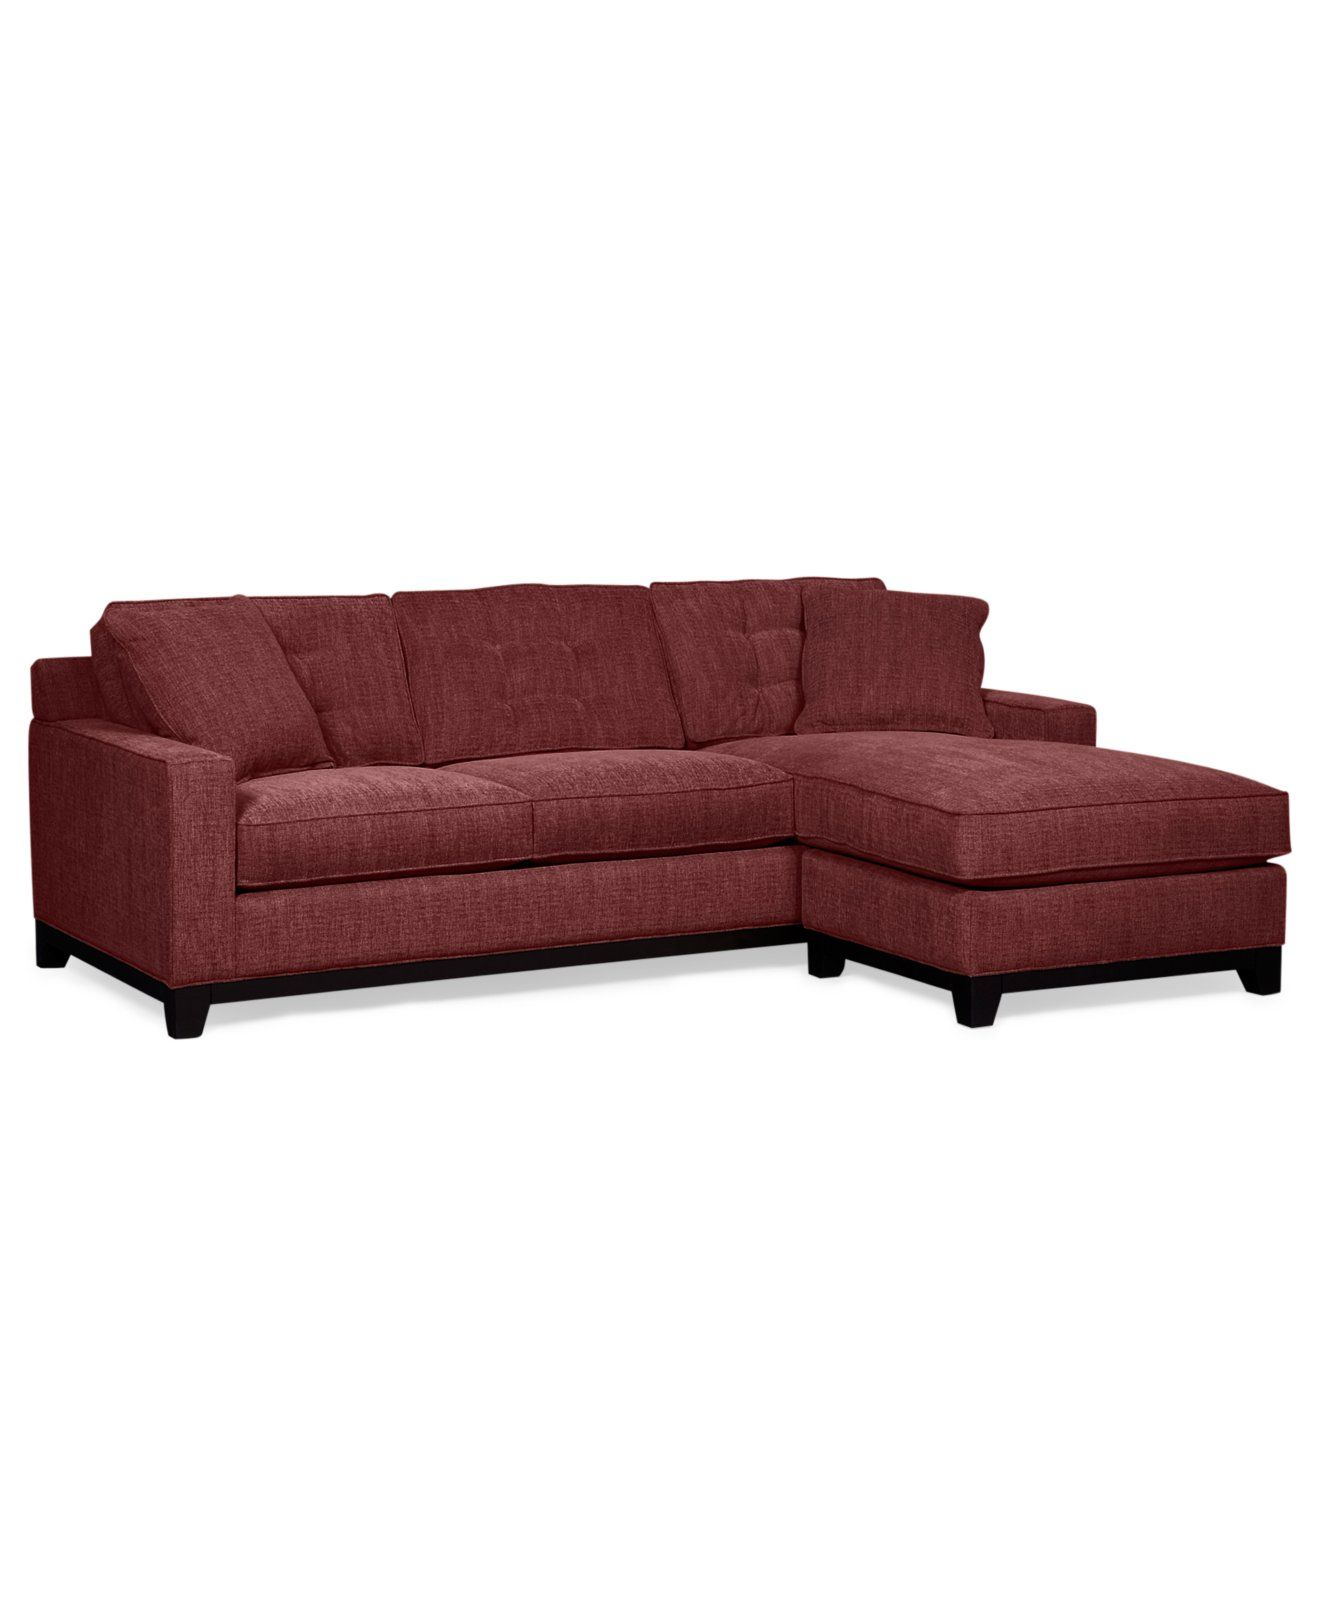 alaina sofa bed queen sleeper chesterfield corner dfs macys beds elliot fabric microfiber